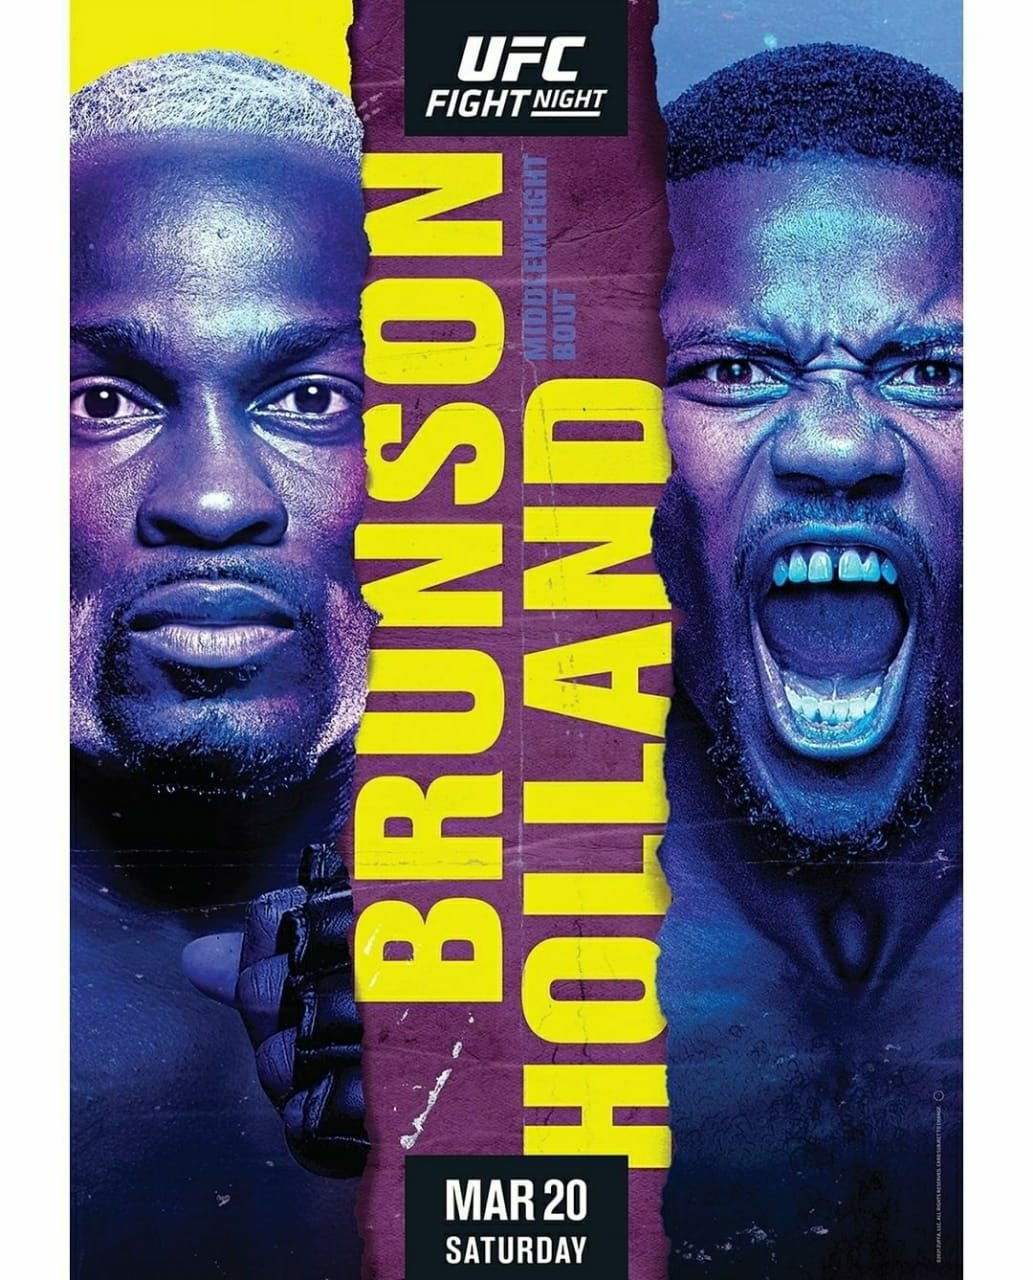 2021 UFC Fight Night Schedule | Ultimate Fighting Championship Brunson vs Holland